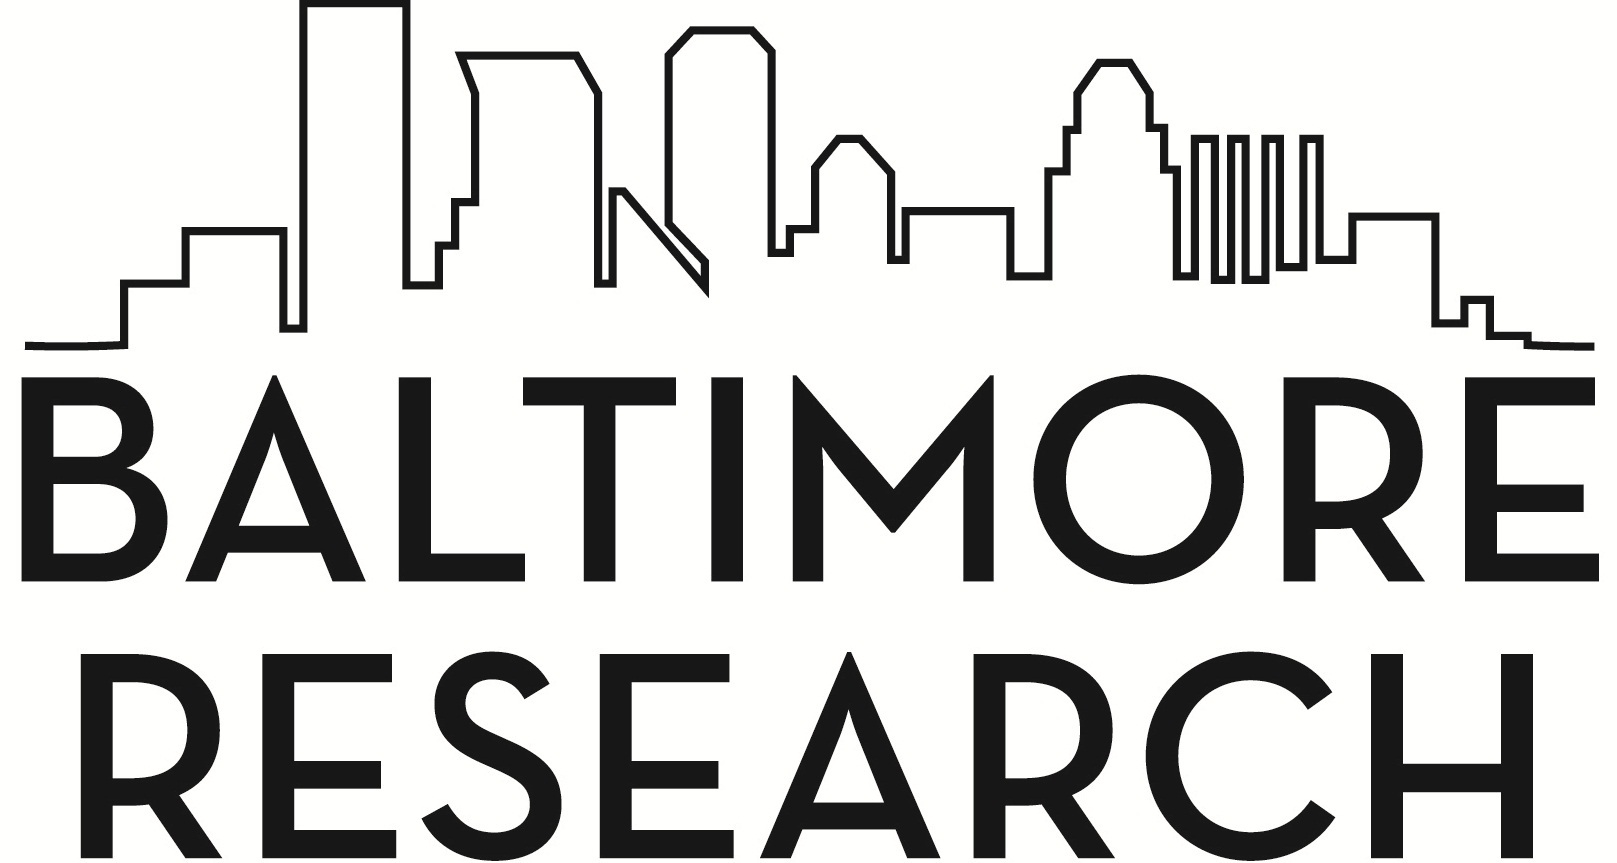 Baltimore Research Facilities